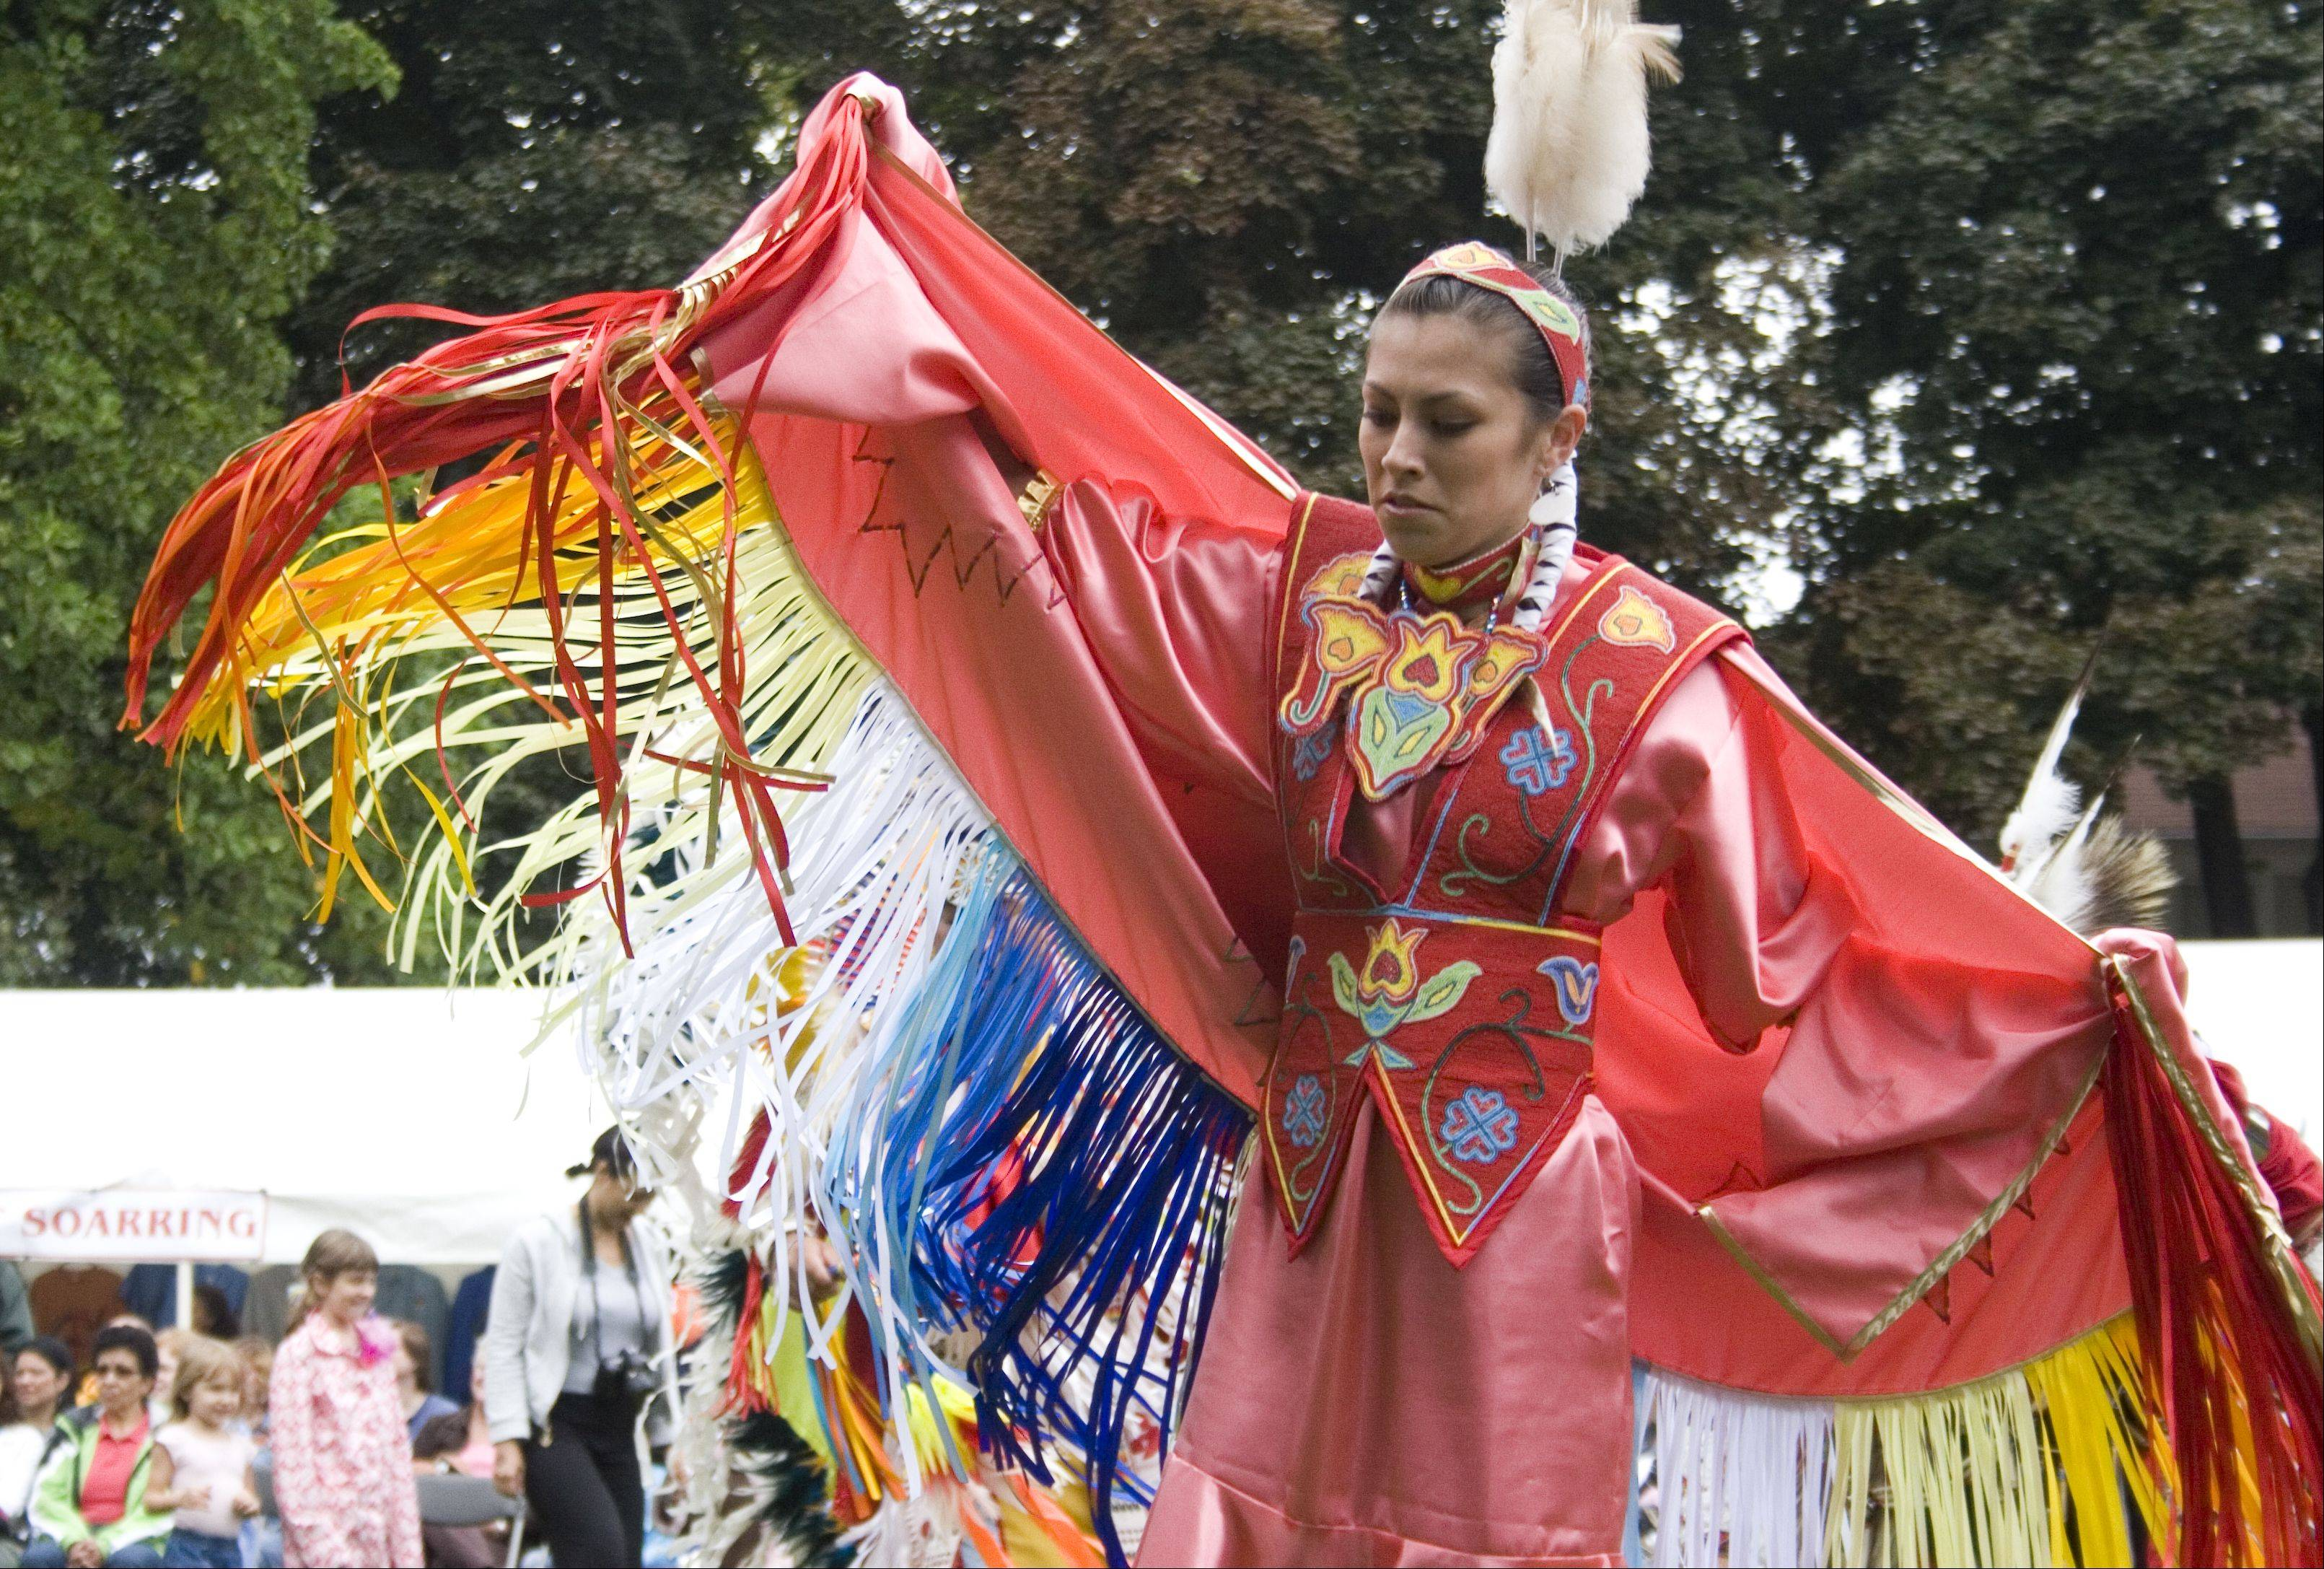 The Harvest Pow Wow, organized by Midwest SOARRING Foundation, showcases Native American culture through dance, music, clothing, food and more this weekend at Naper Settlement.